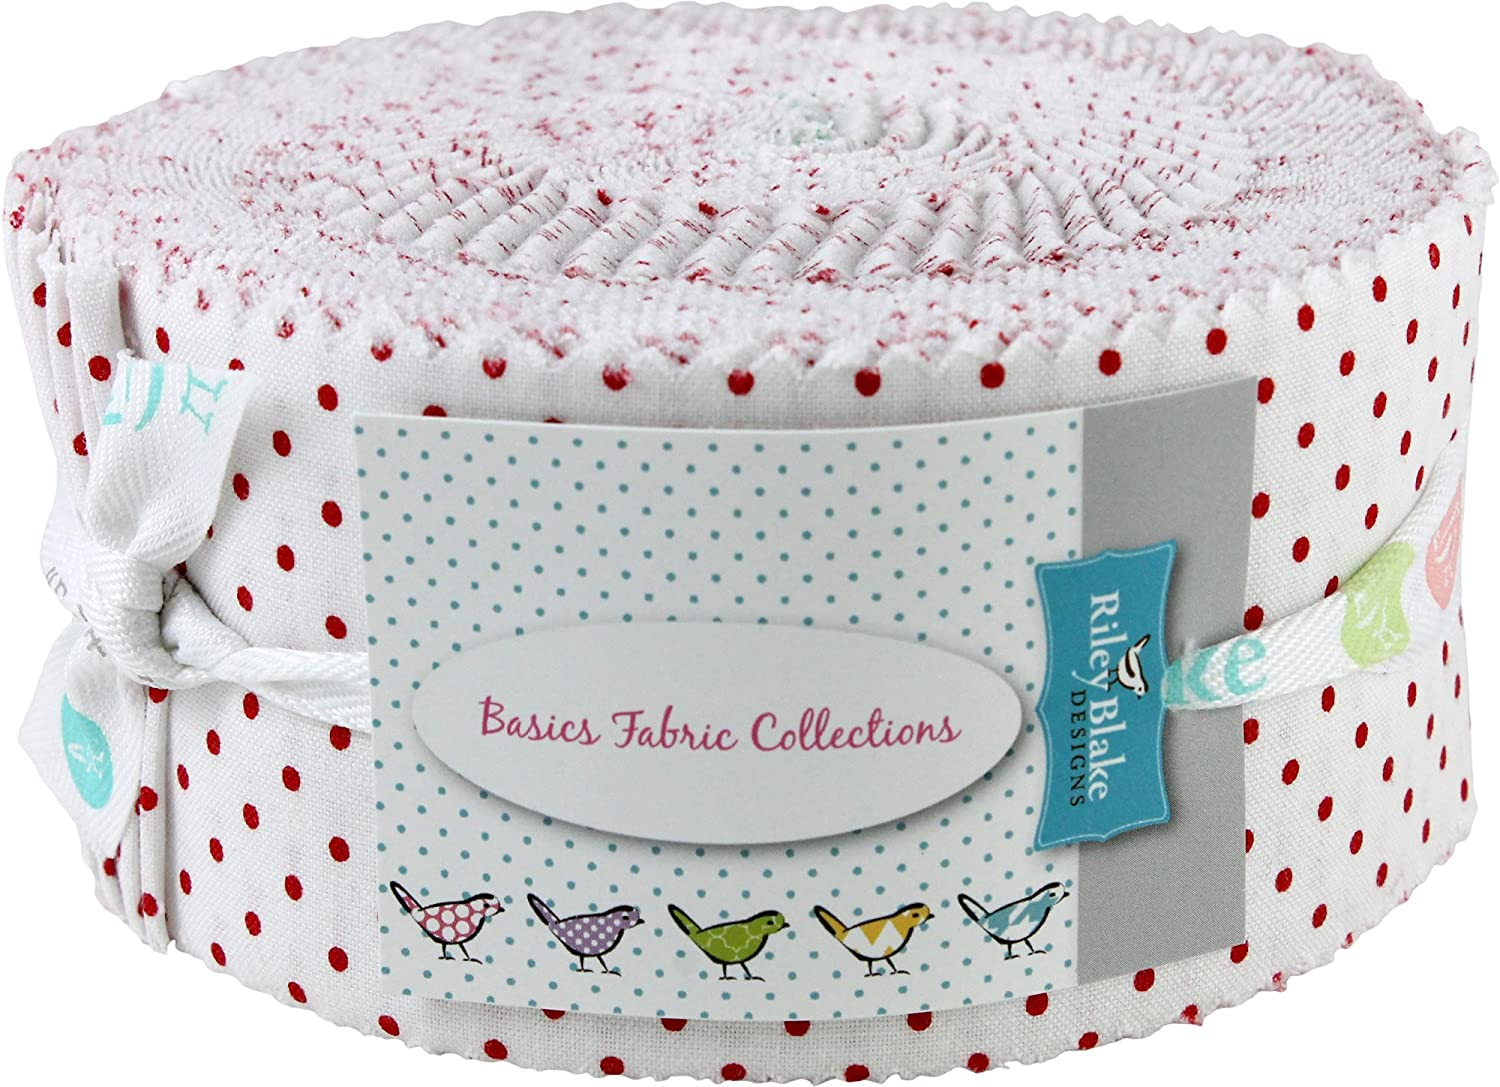 Swiss Dot on White Red Rolie Polie 40 2.5-inch Strips Jelly Roll Riley Blake Designs RP-660-80-40